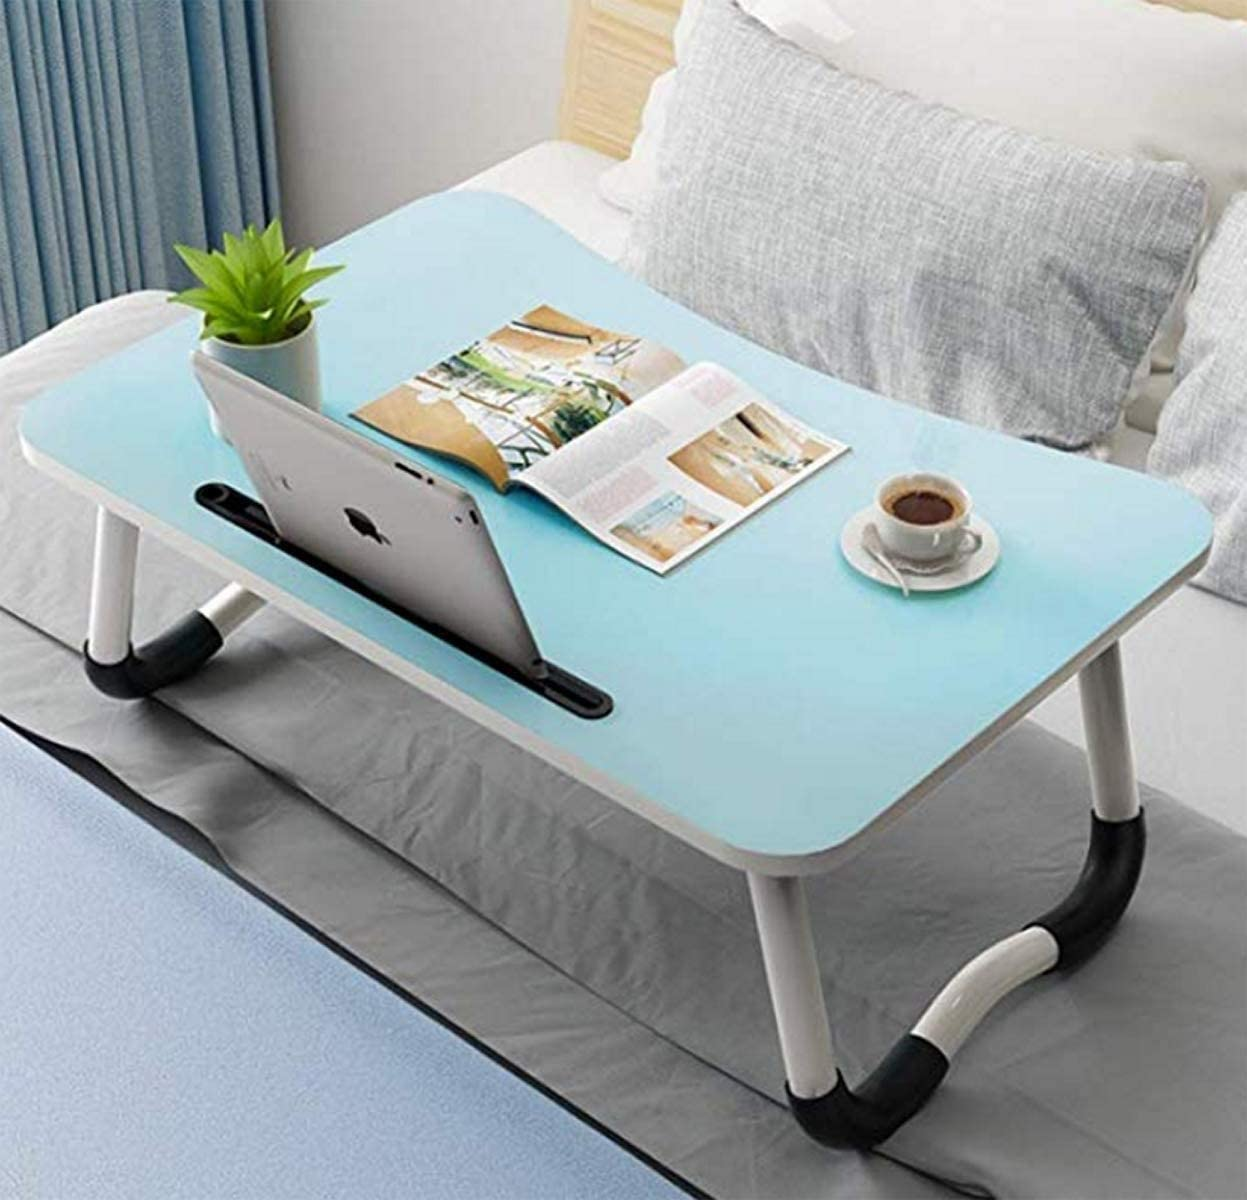 Laptop Bed Tray Table, Foldable Lap Desk Stand, Multifunction Lap Tablet with Slot and Cup Holder, Bed Tray Laptop Desk for Eating Breakfast, Reading, Working, Watching Movie on Bed/Couch/Sofa/Floor